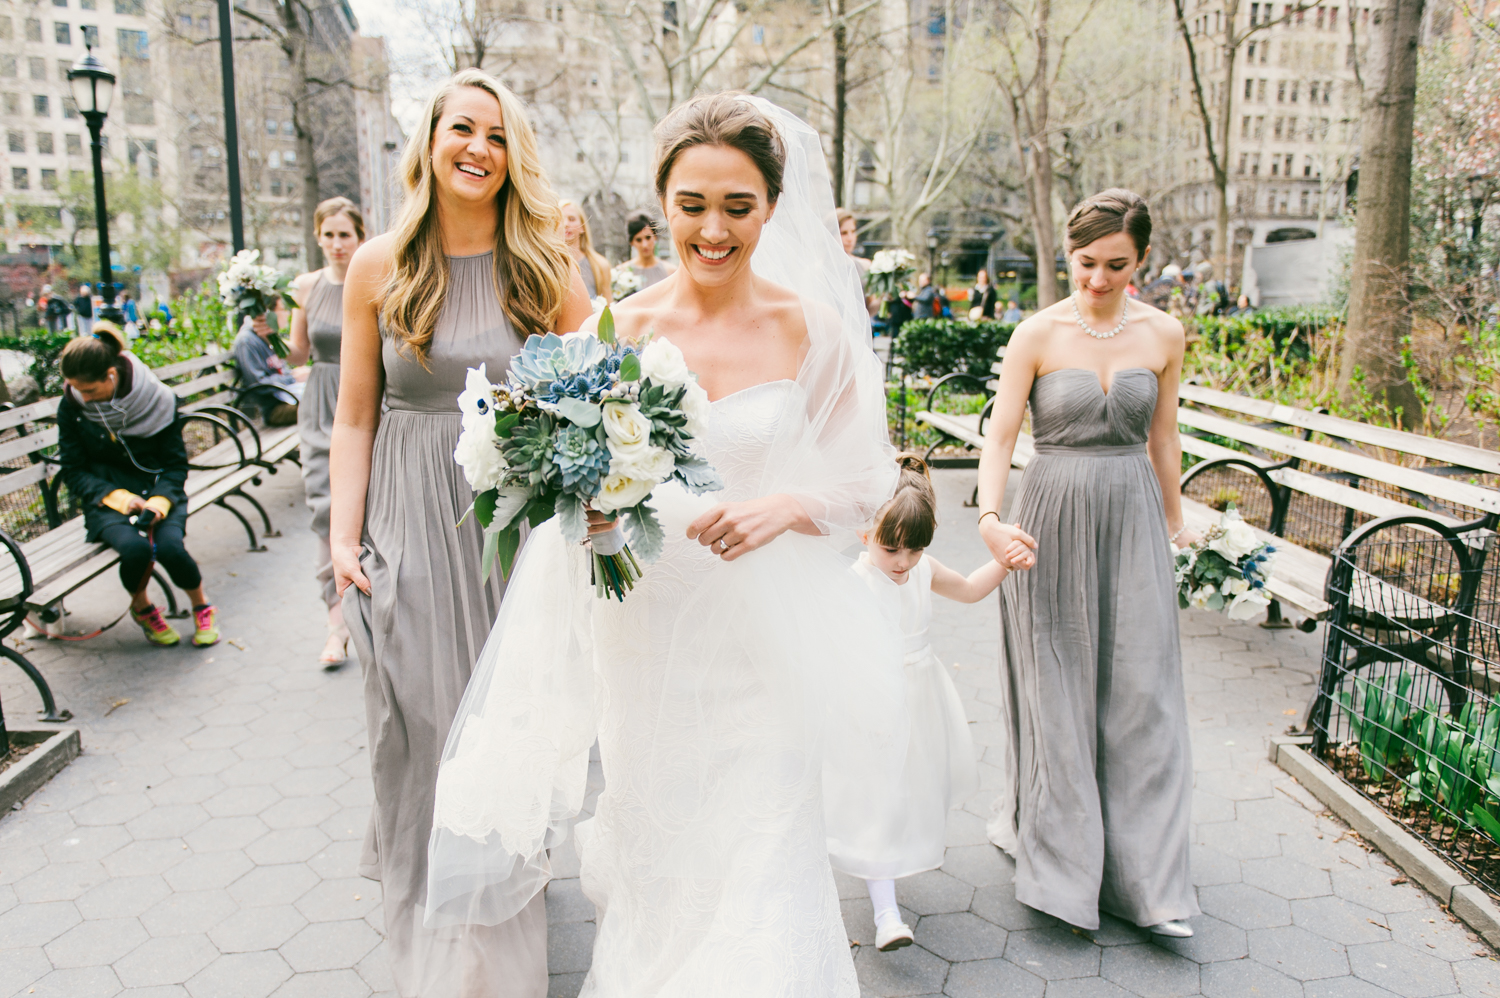 ManhattanPenthouse.WashingtonSquarePark.Wedding.BB.17.jpg